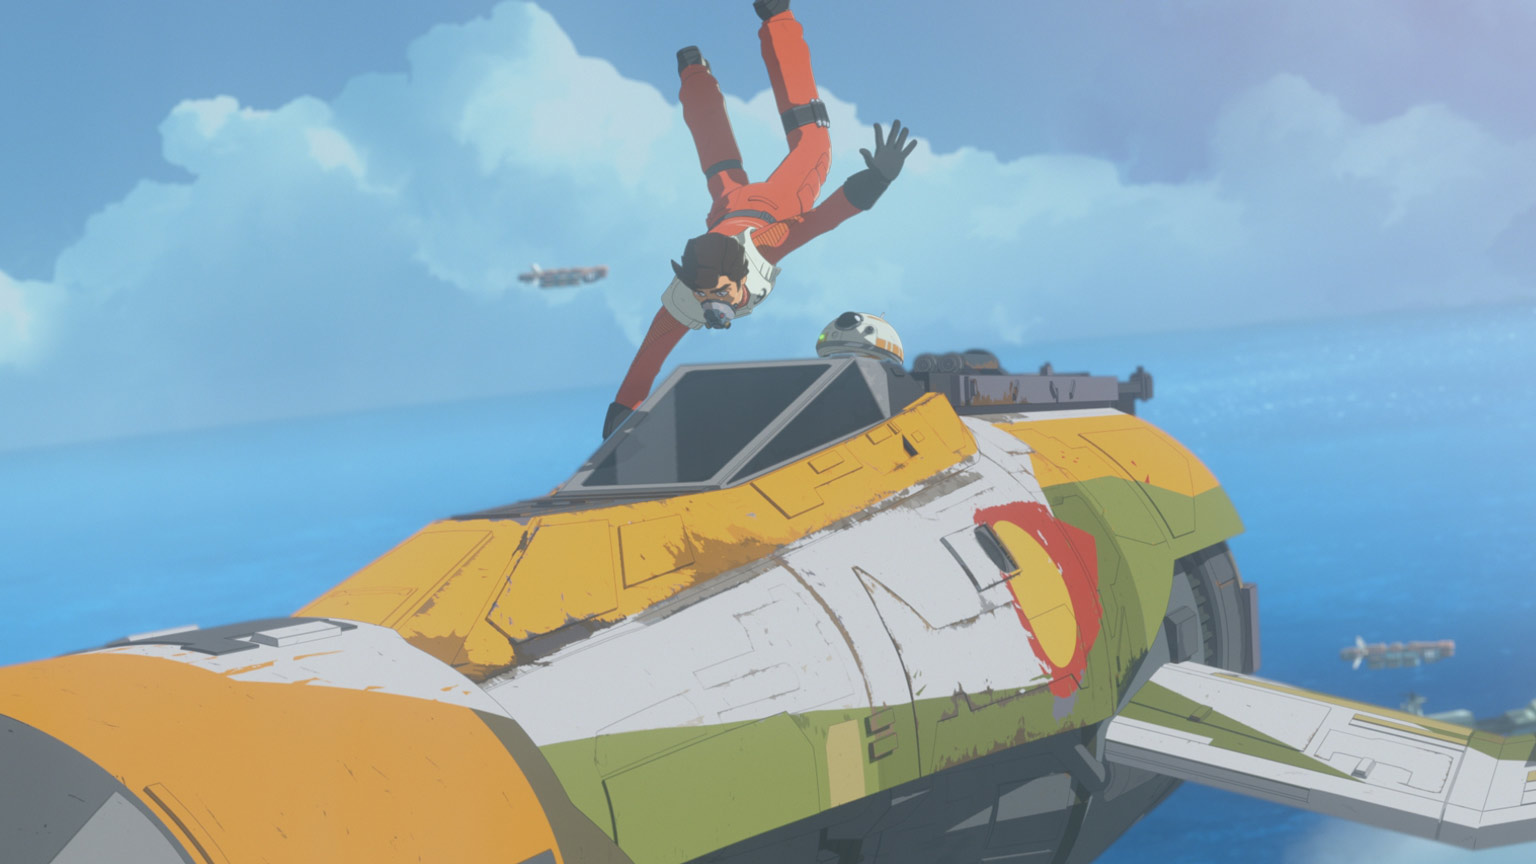 Poe Dameron hangs onto the Fireball in Star Wars Resistance.